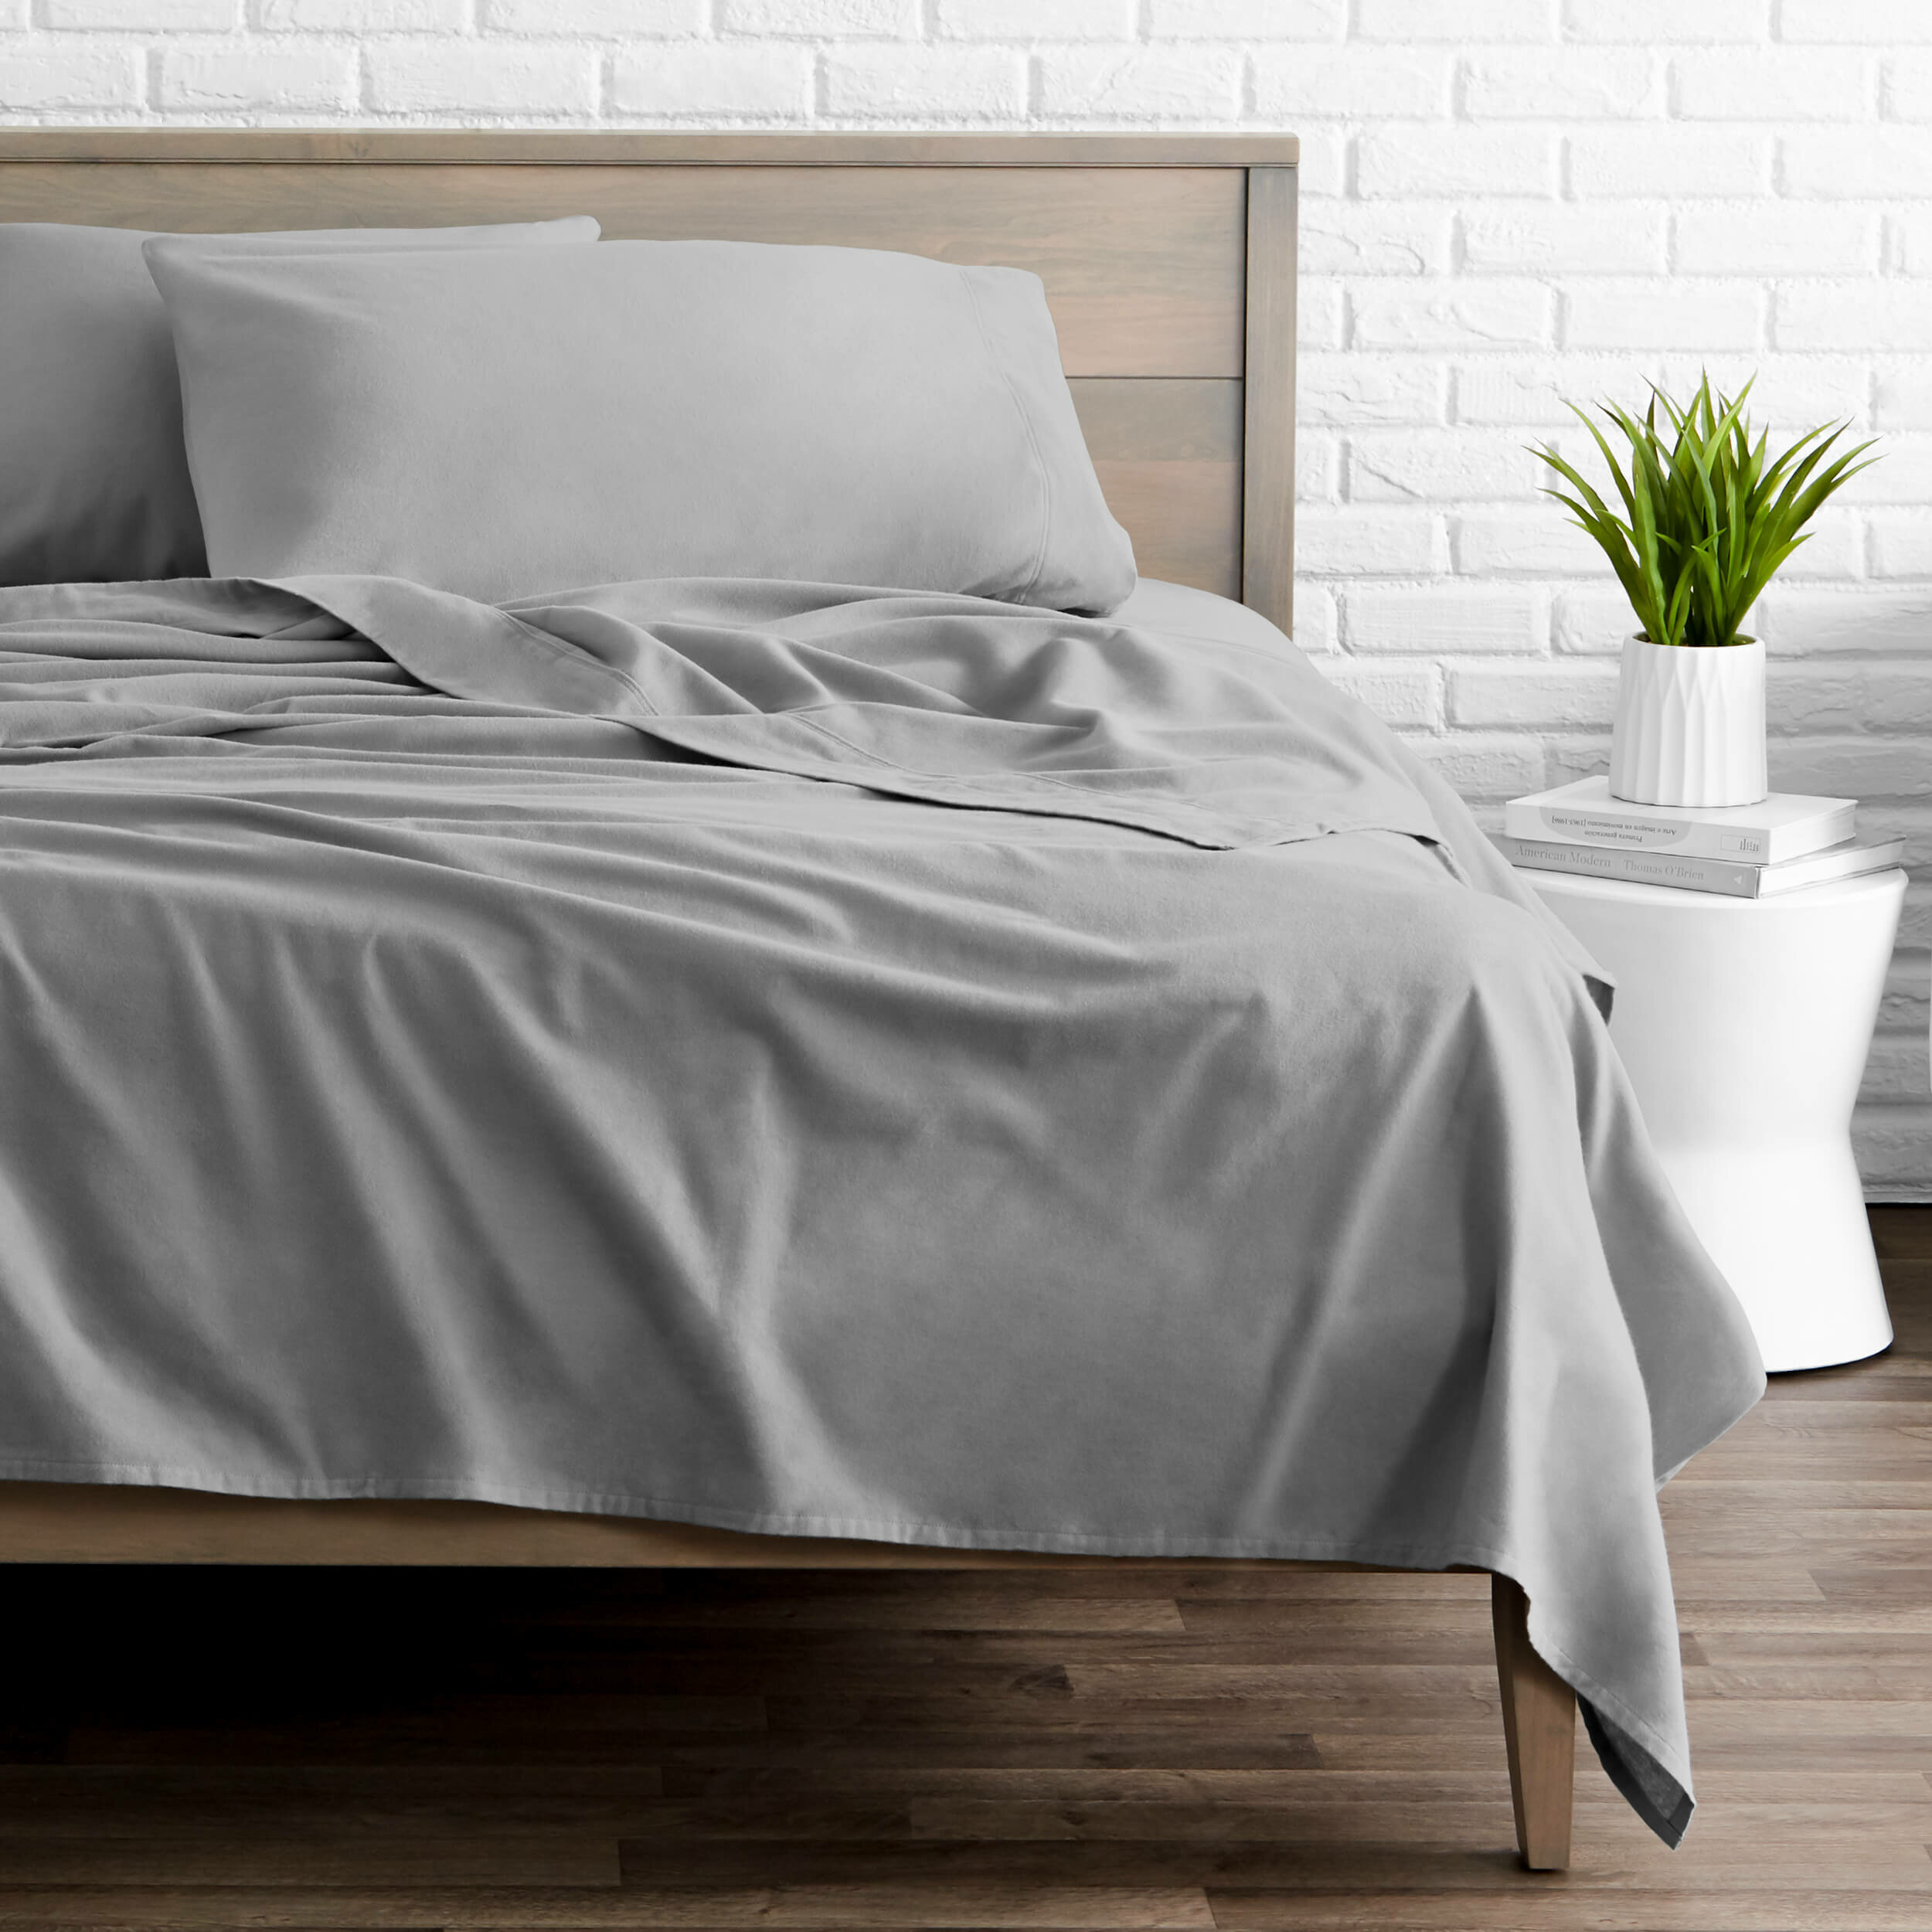 Bare Home Flannel Fitted Bottom Sheets Velvety Soft Heavyw 100/% Cotton 2 Pack